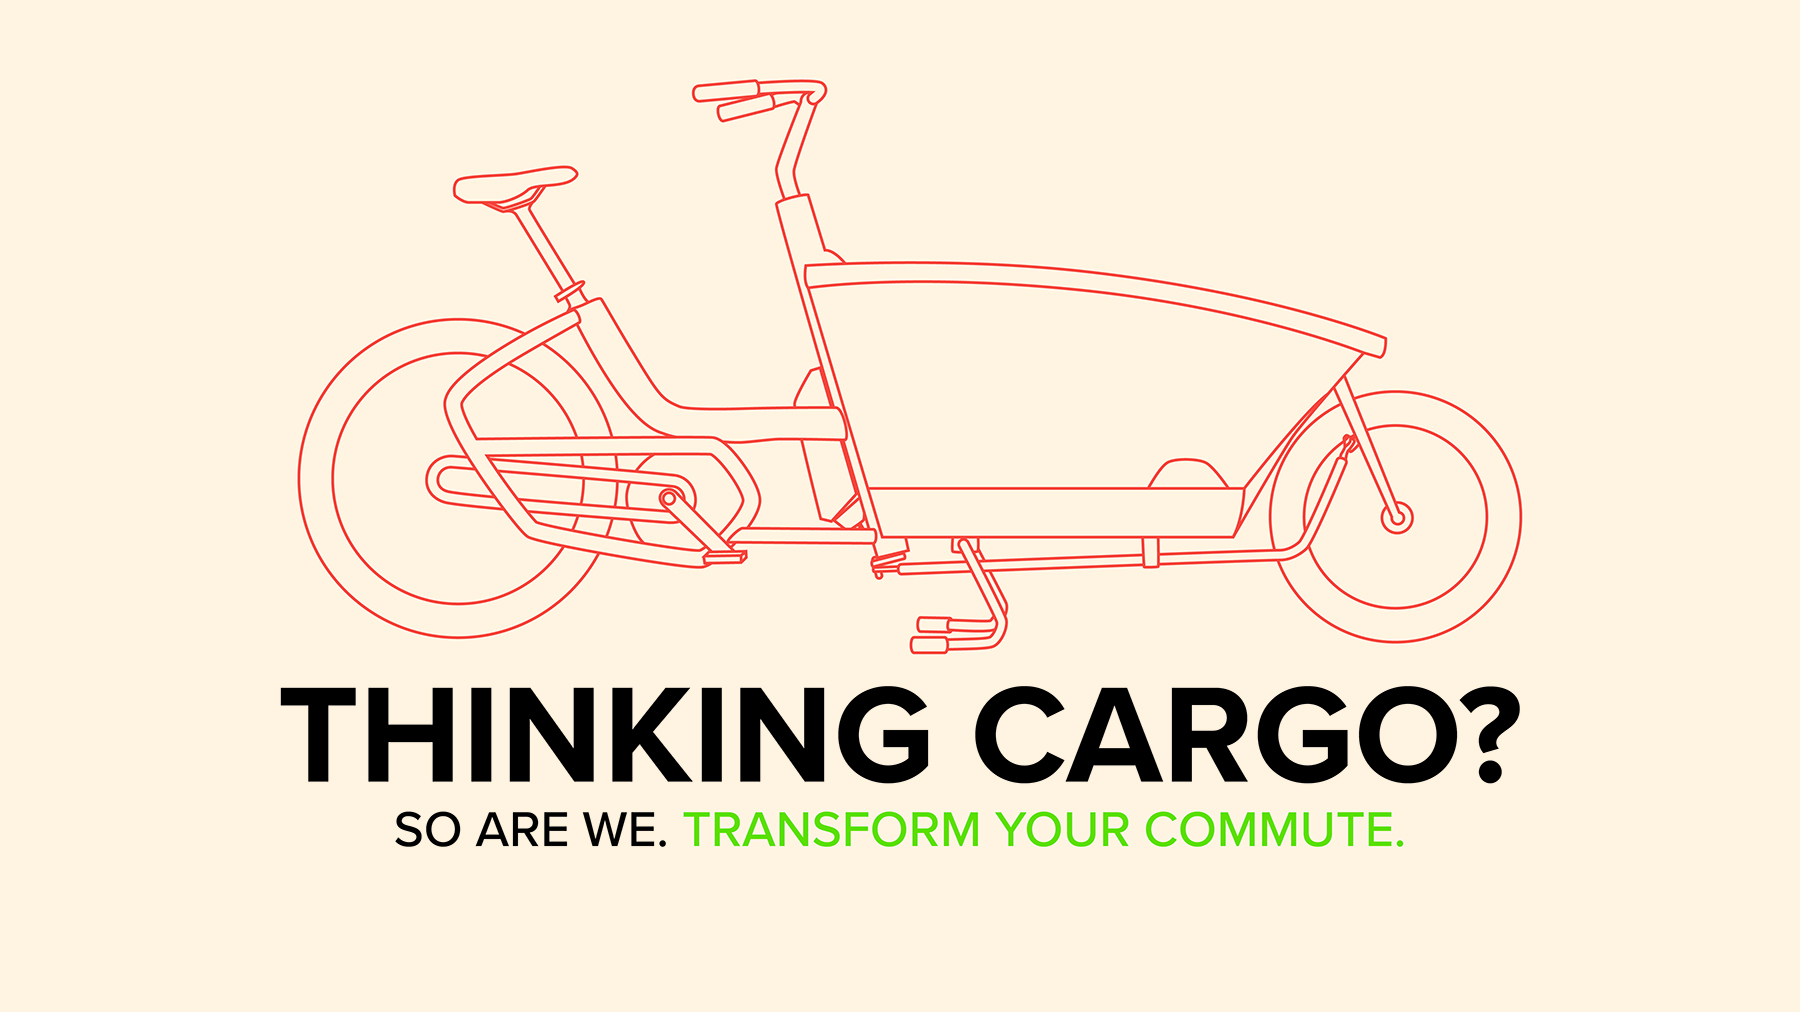 Family Time with Cargo Bikes